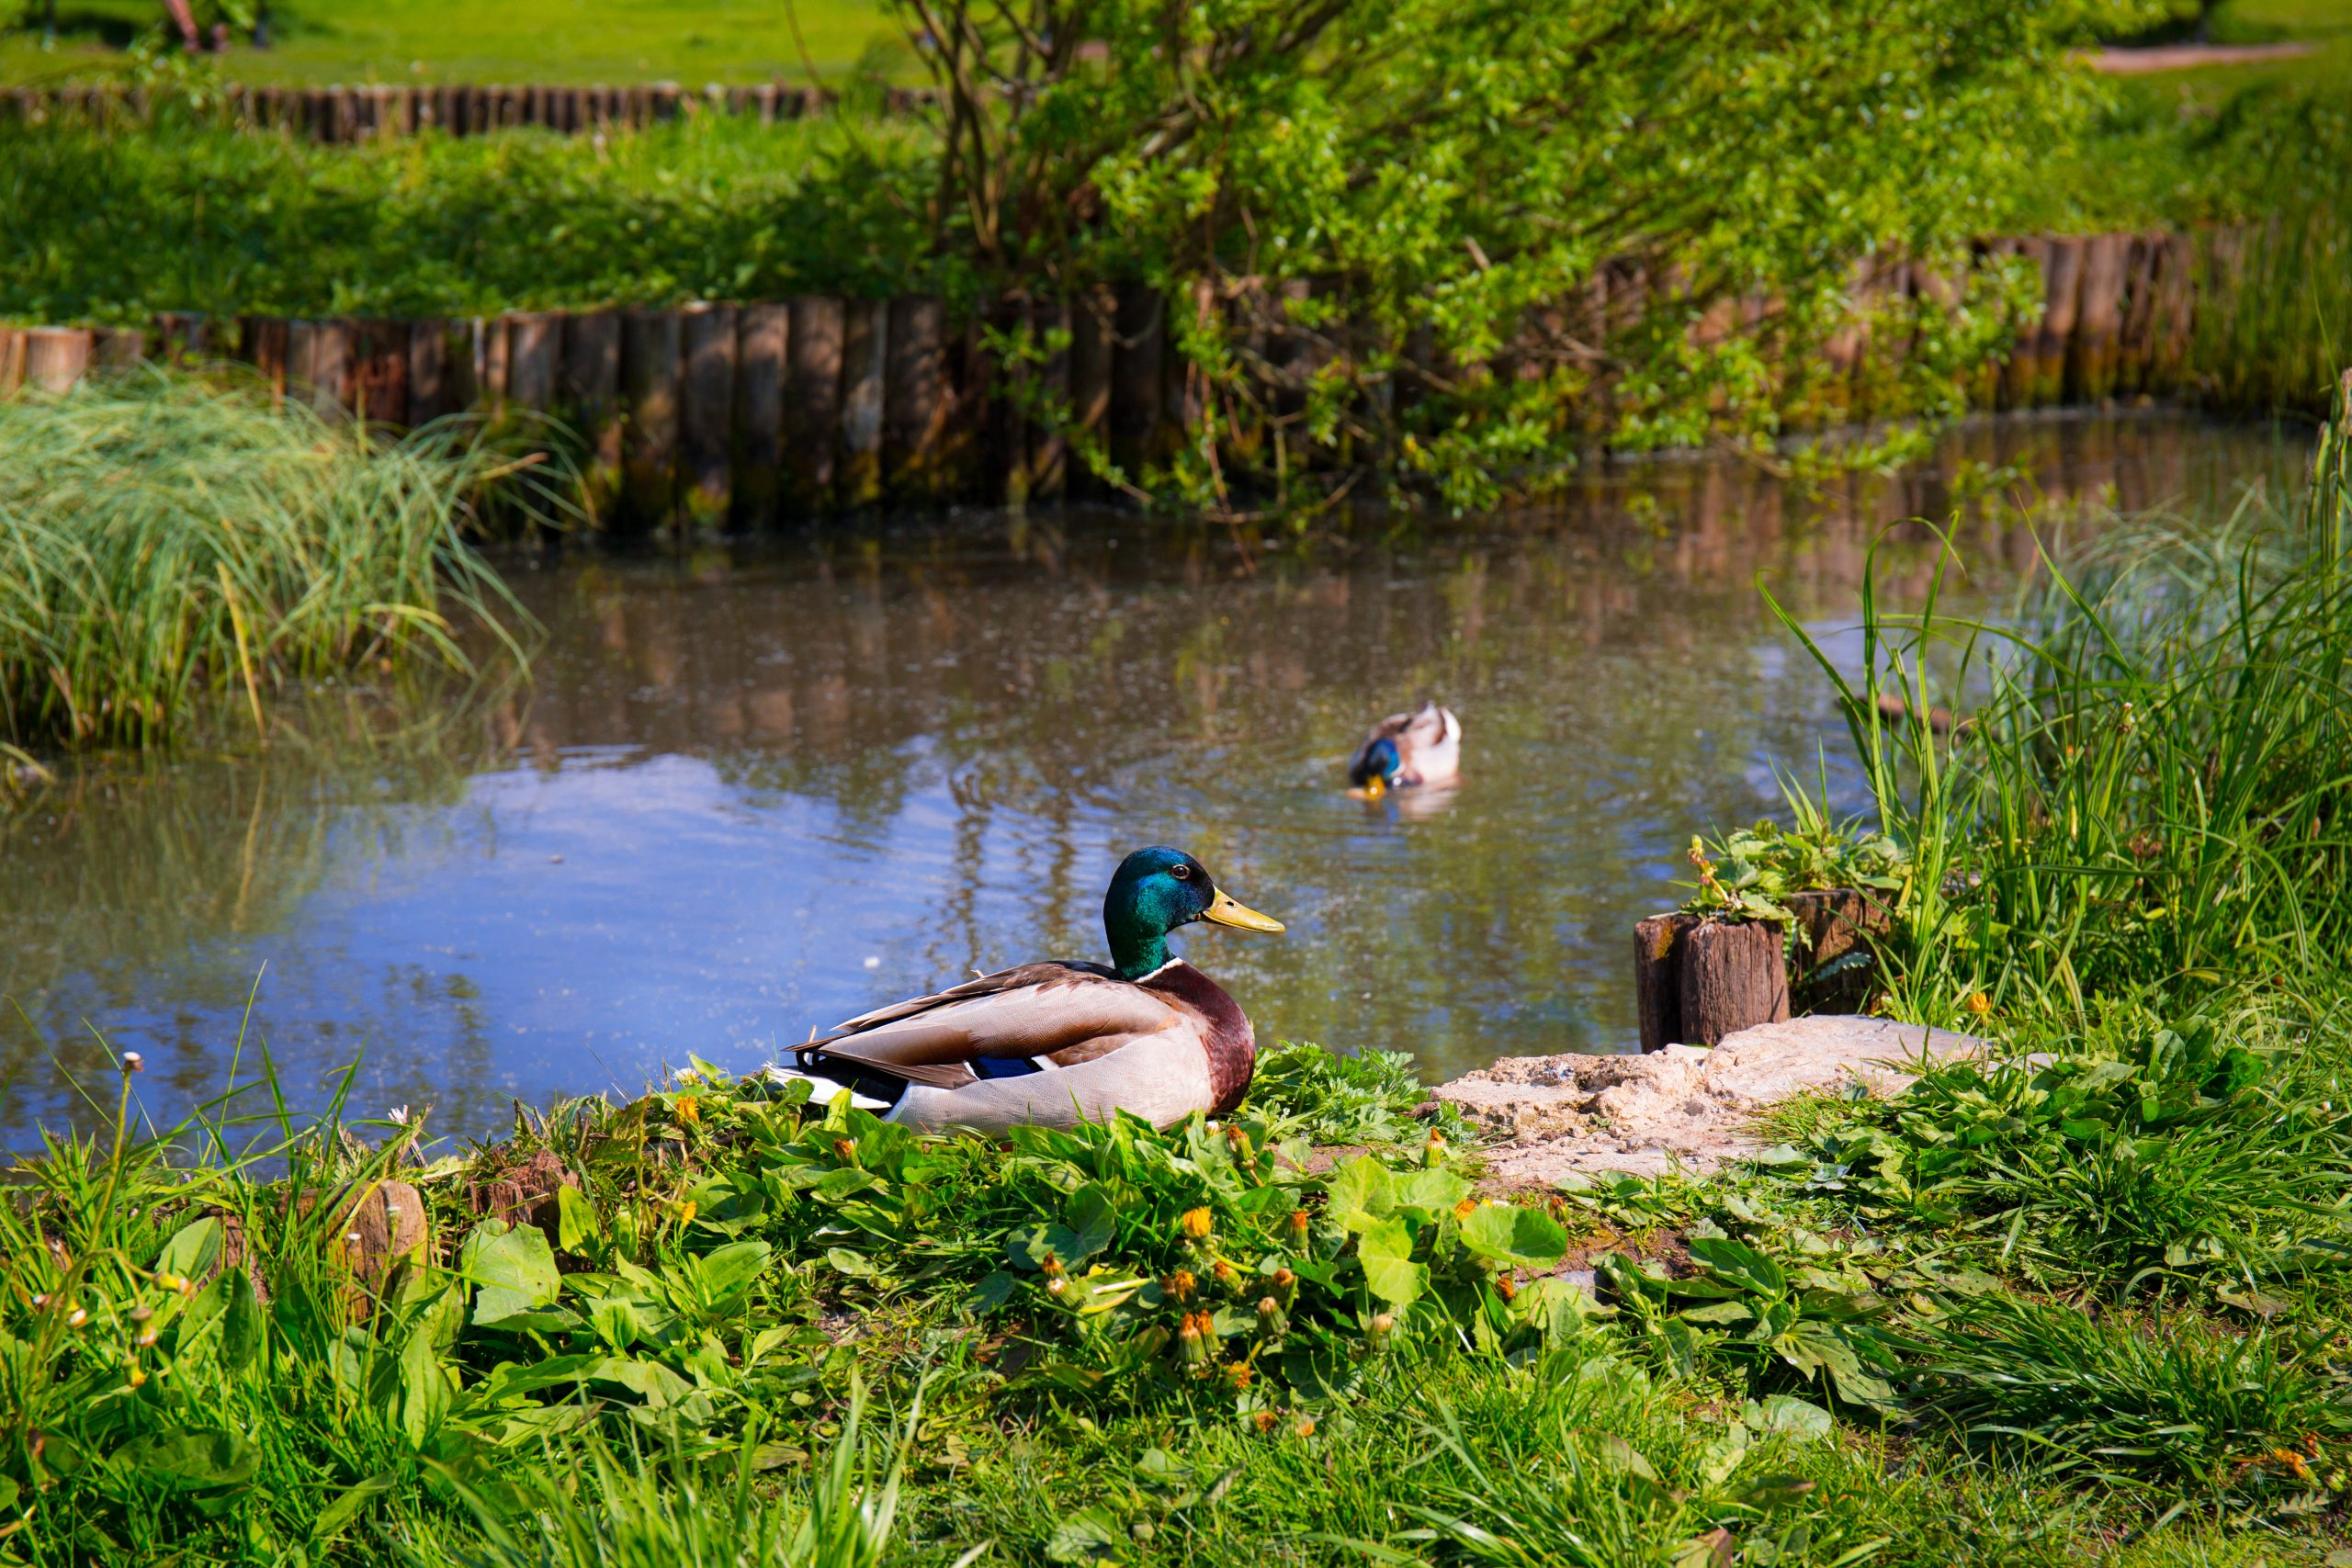 Retention pond with Mallard ducks